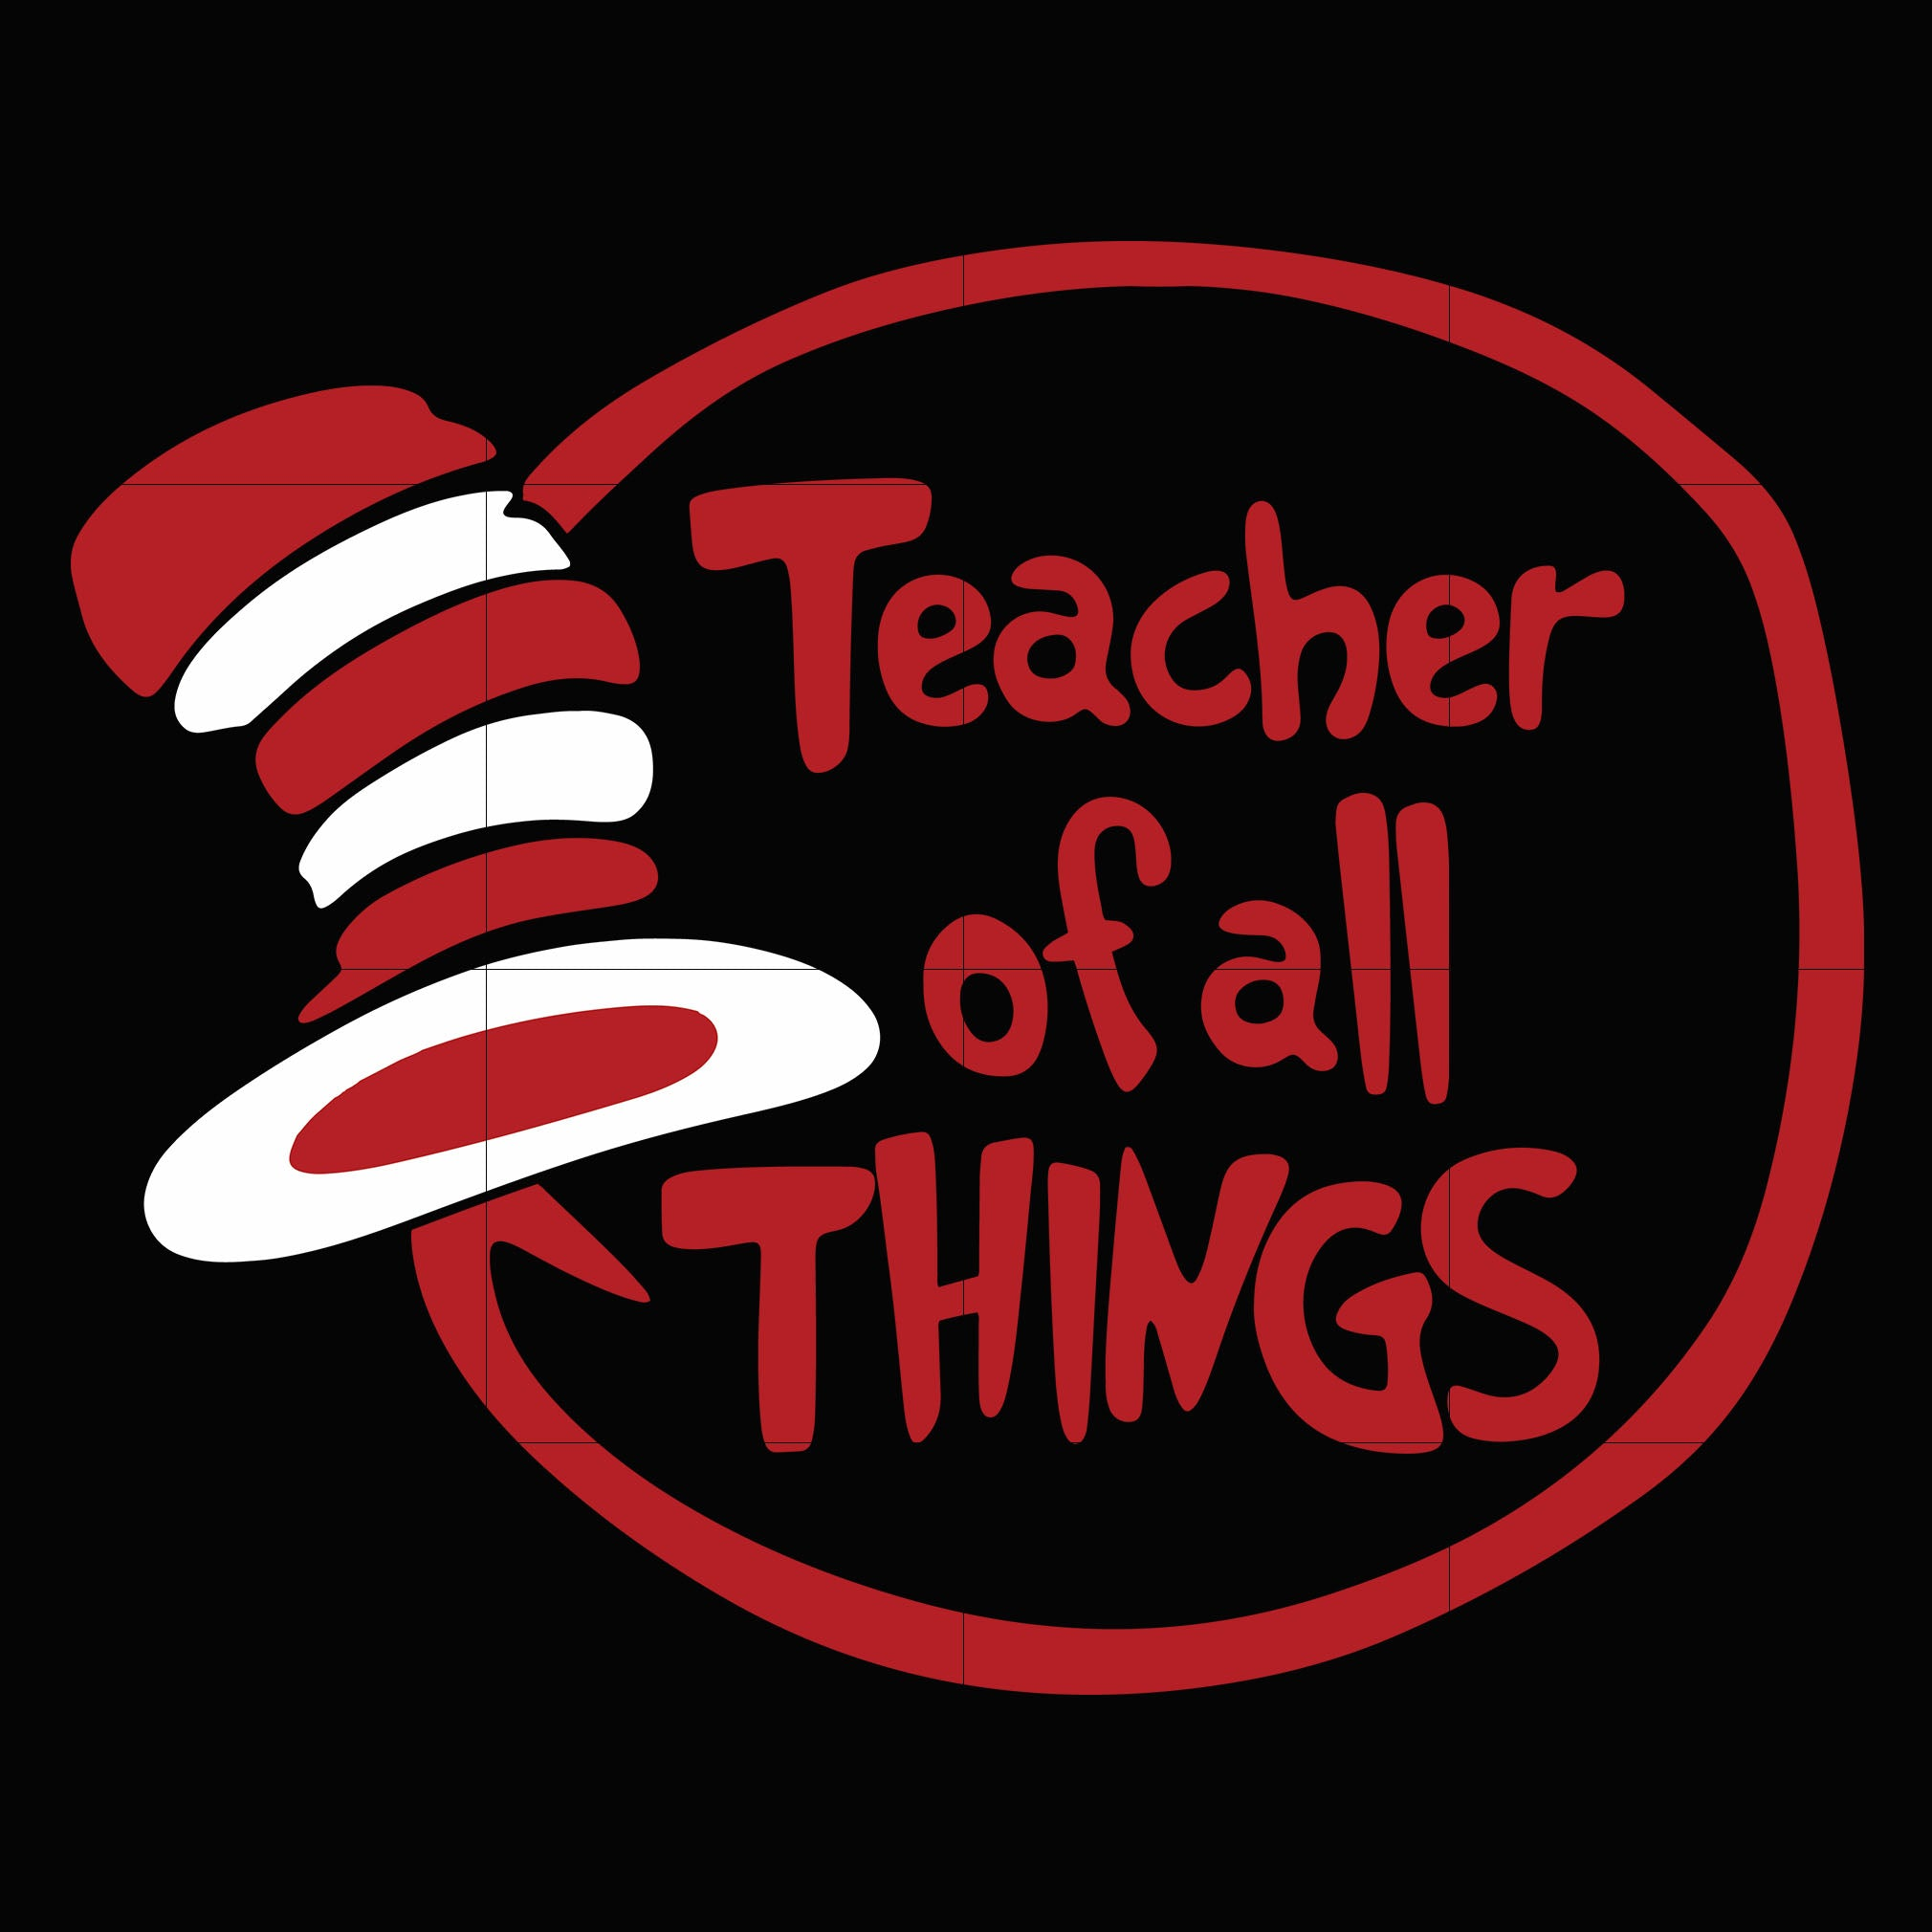 Teacher of all things, dr seuss svg, dr seuss quotes digital file